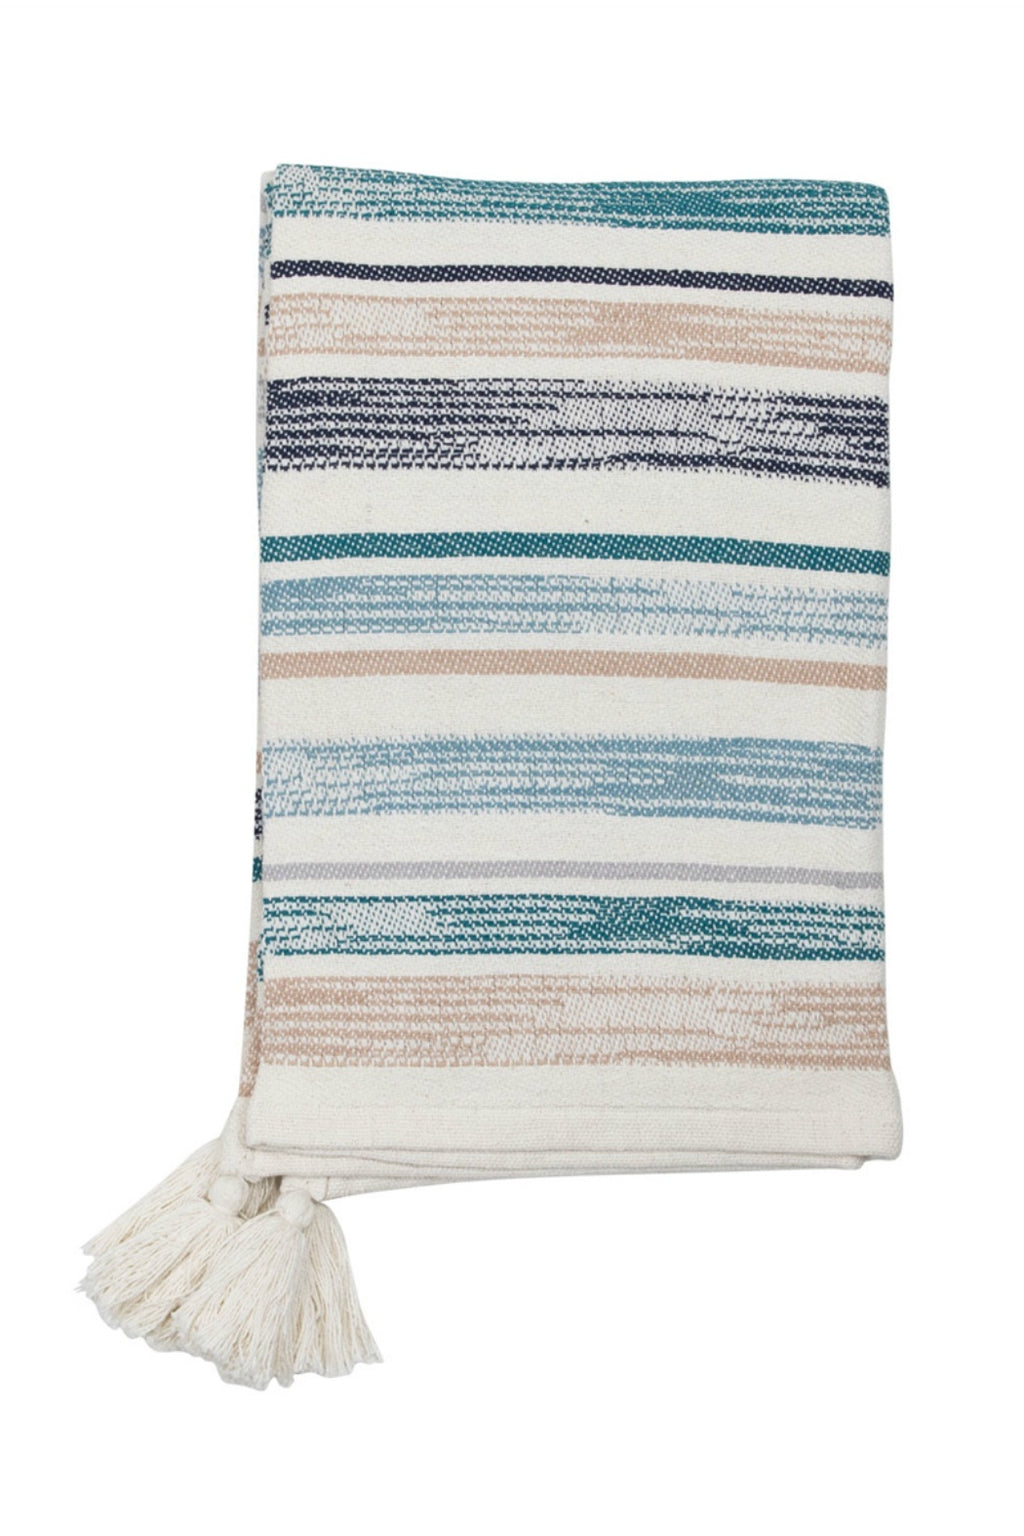 Foreside Hand Woven Hayes Throw in Blue